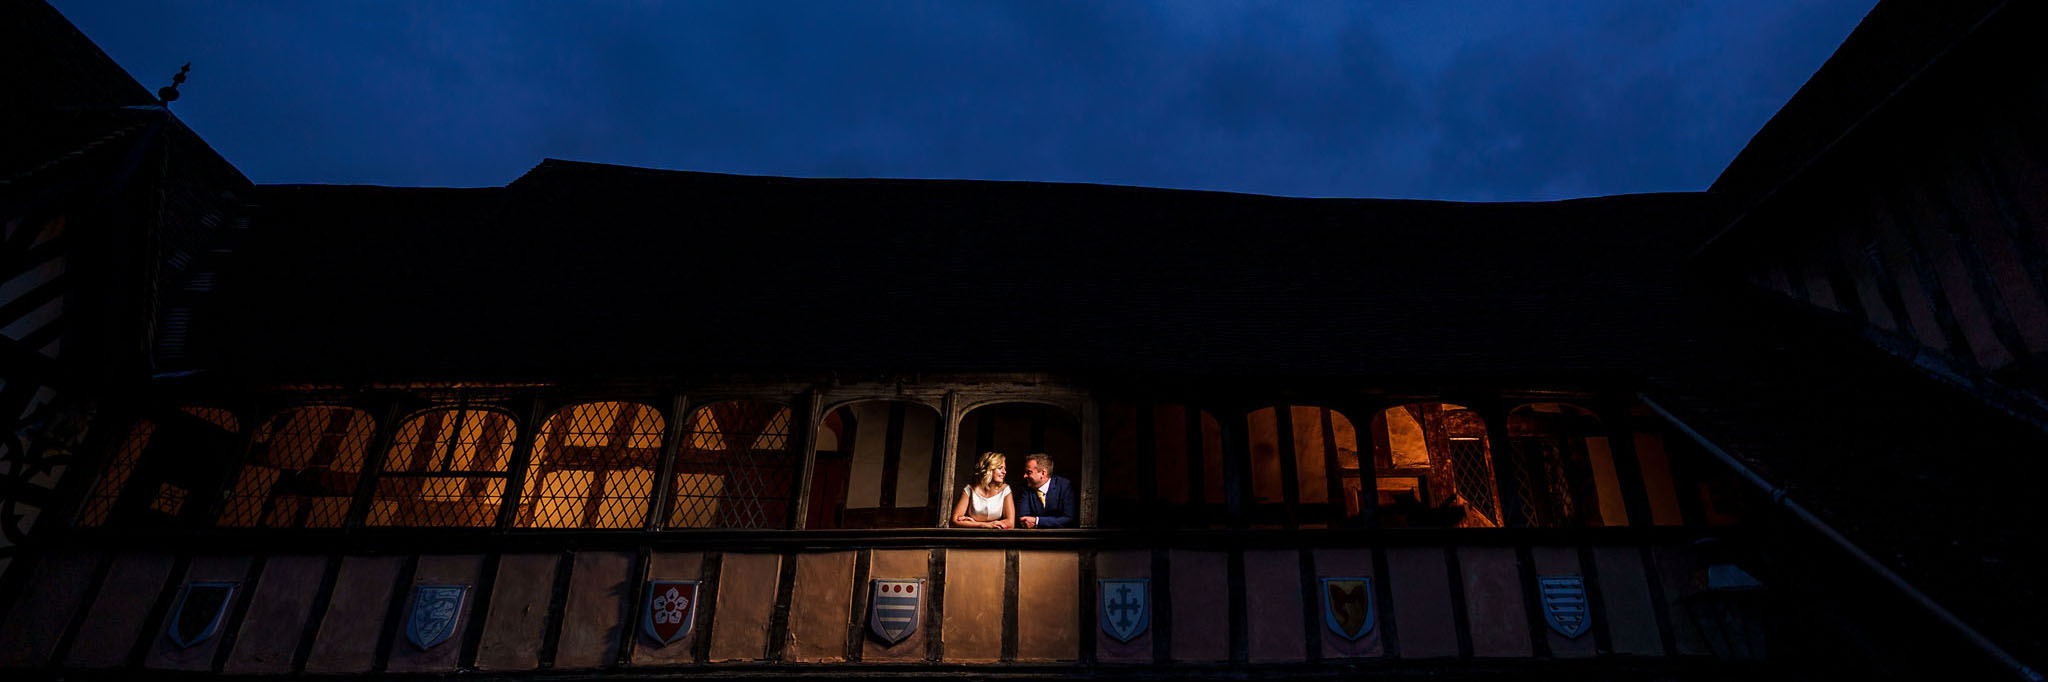 bride and groom shot at night time at Lord Leycester Hospital